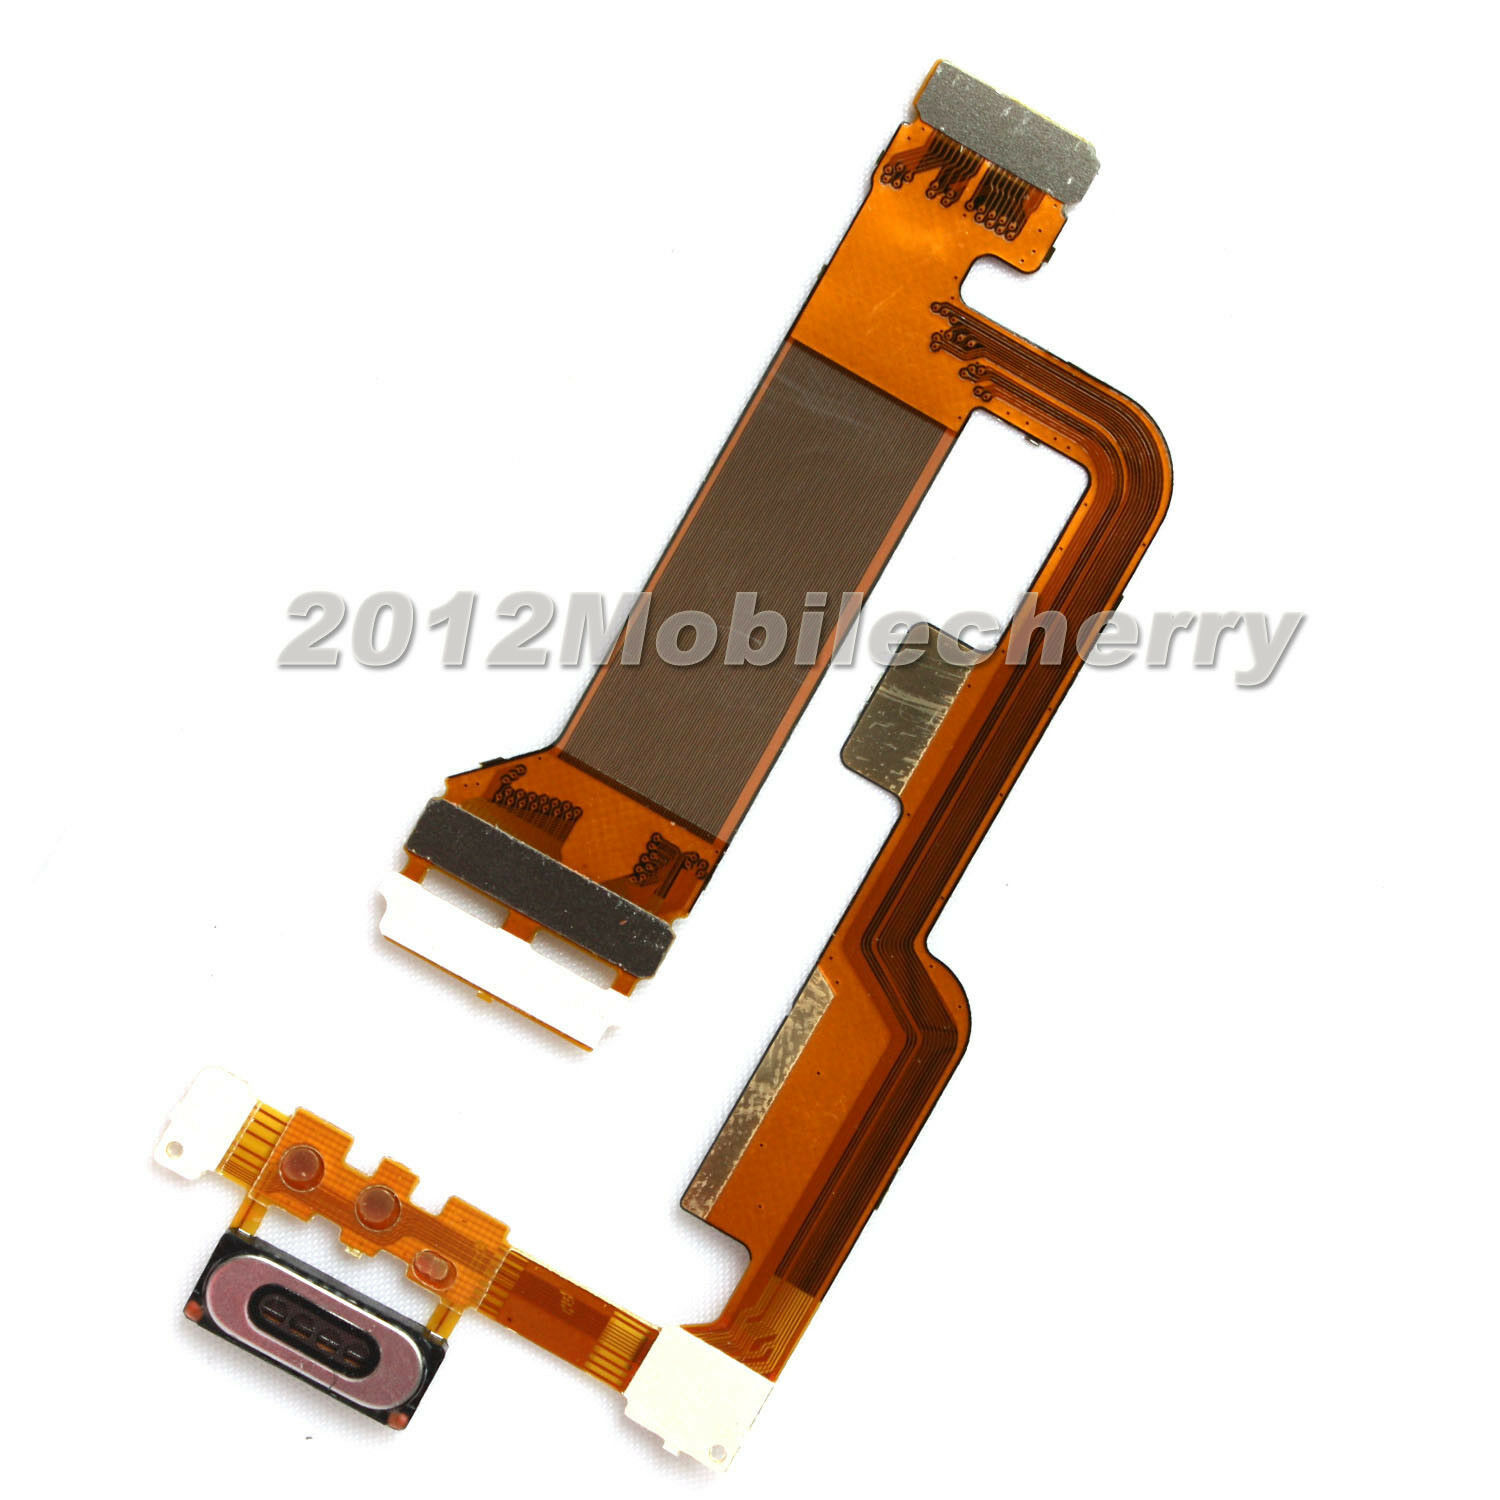 Flat Flex Cable : New flex cable ribbon flat connector for sony ericsson